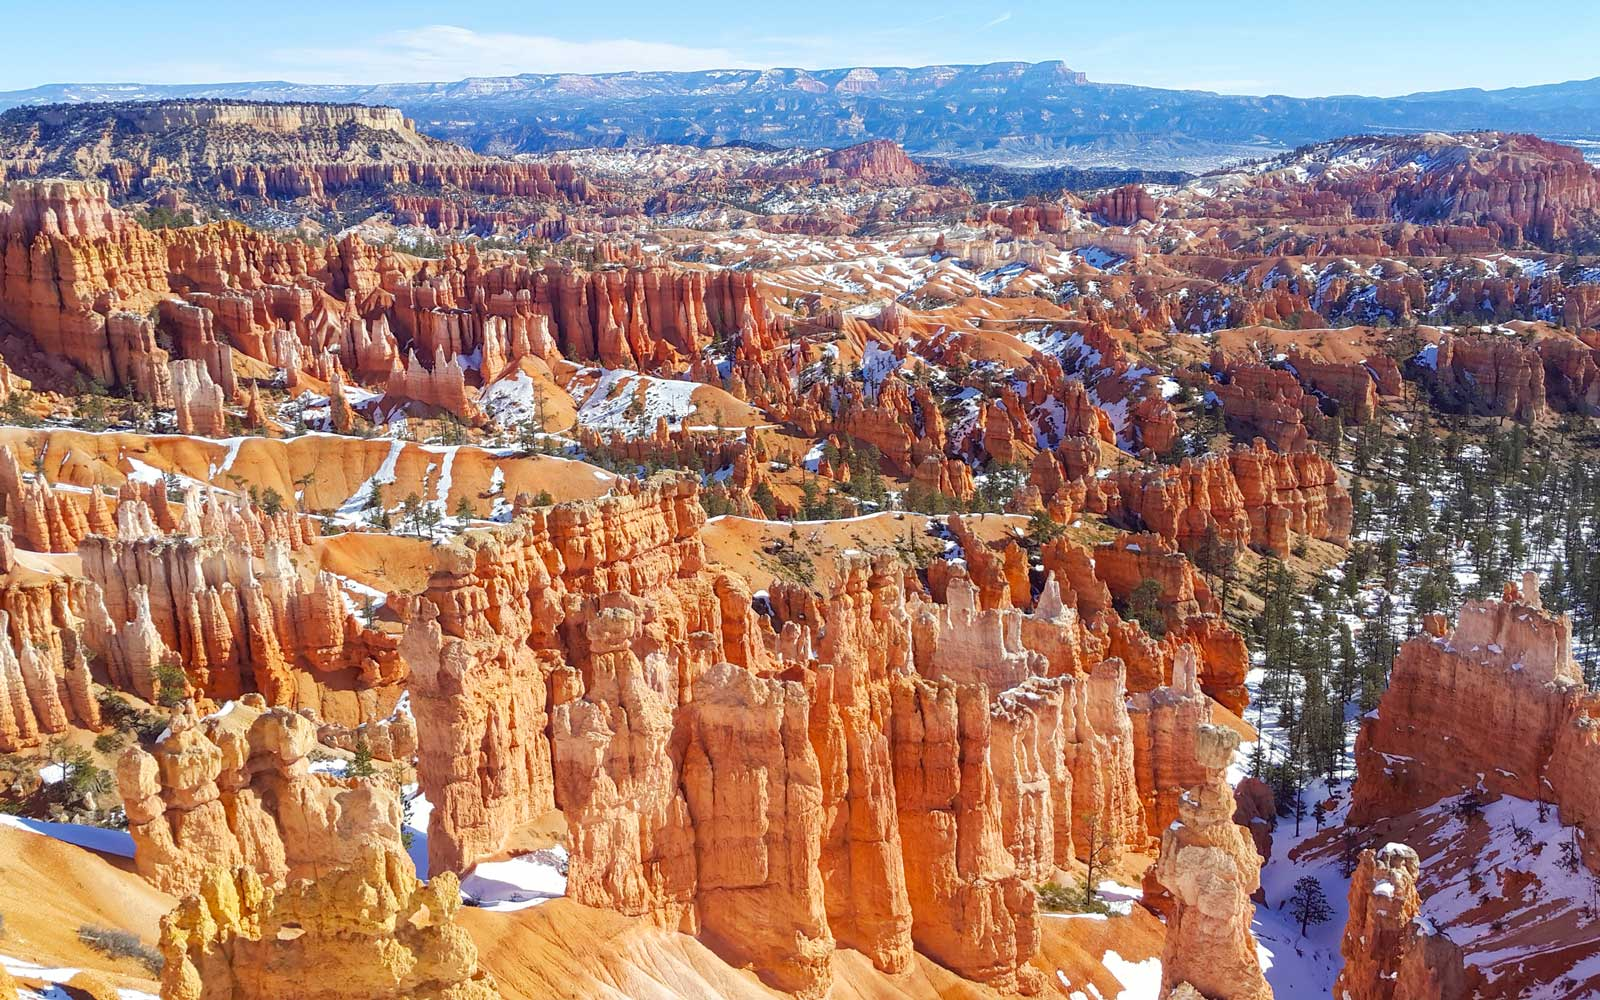 Bryce Canyon National Park with snow in winter season, Utah